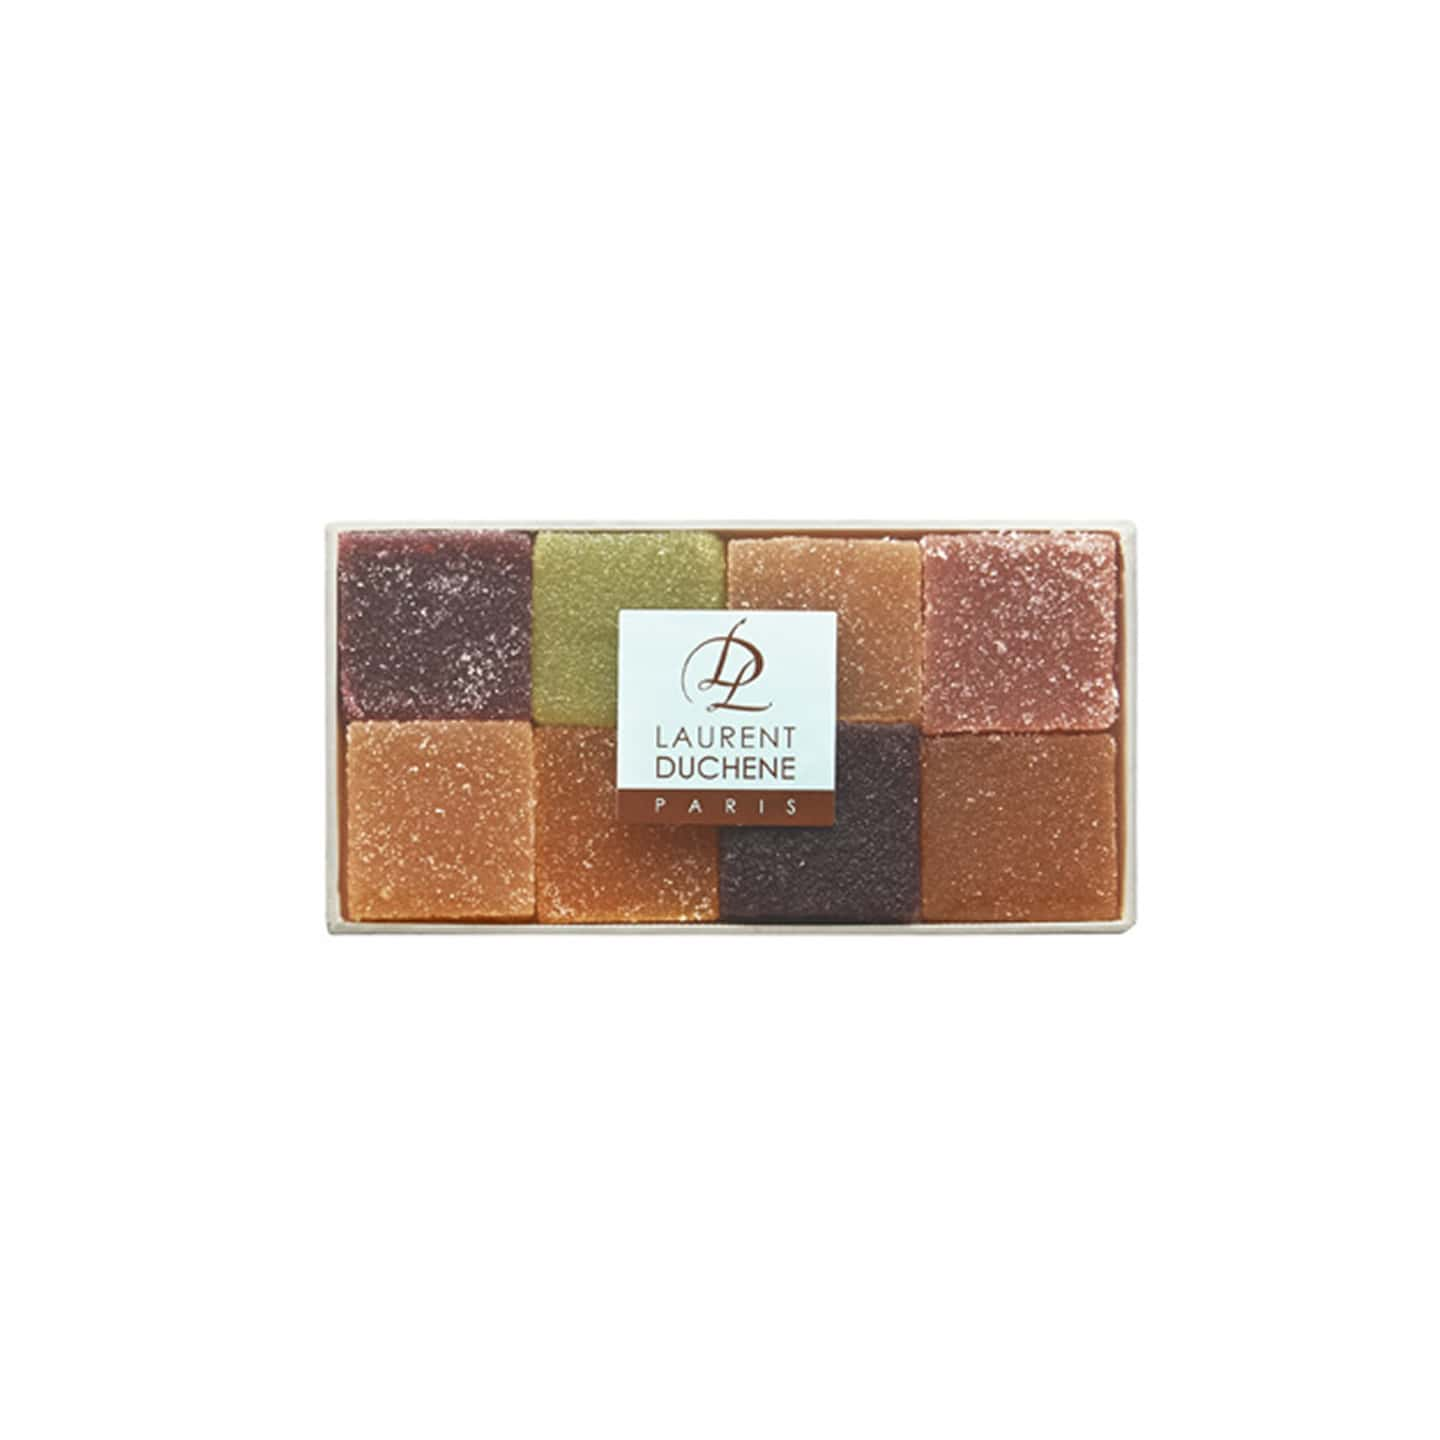 Pâte de fruits 140g